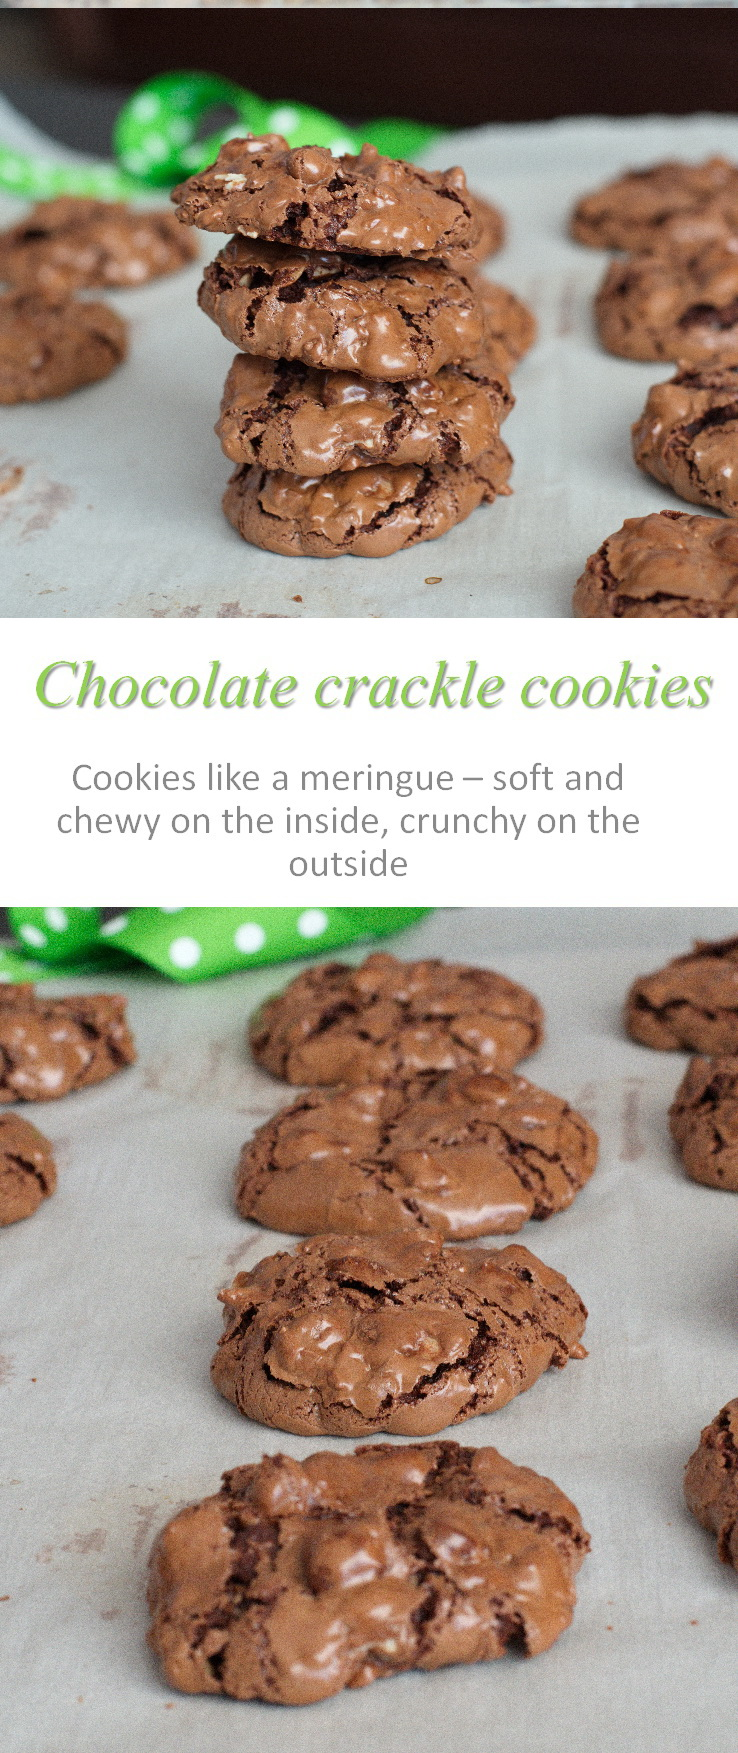 These chocolate crackle cookies are so yummy - crunchy on the outside, chewy on the inside. Really easy to make as well! #cookies